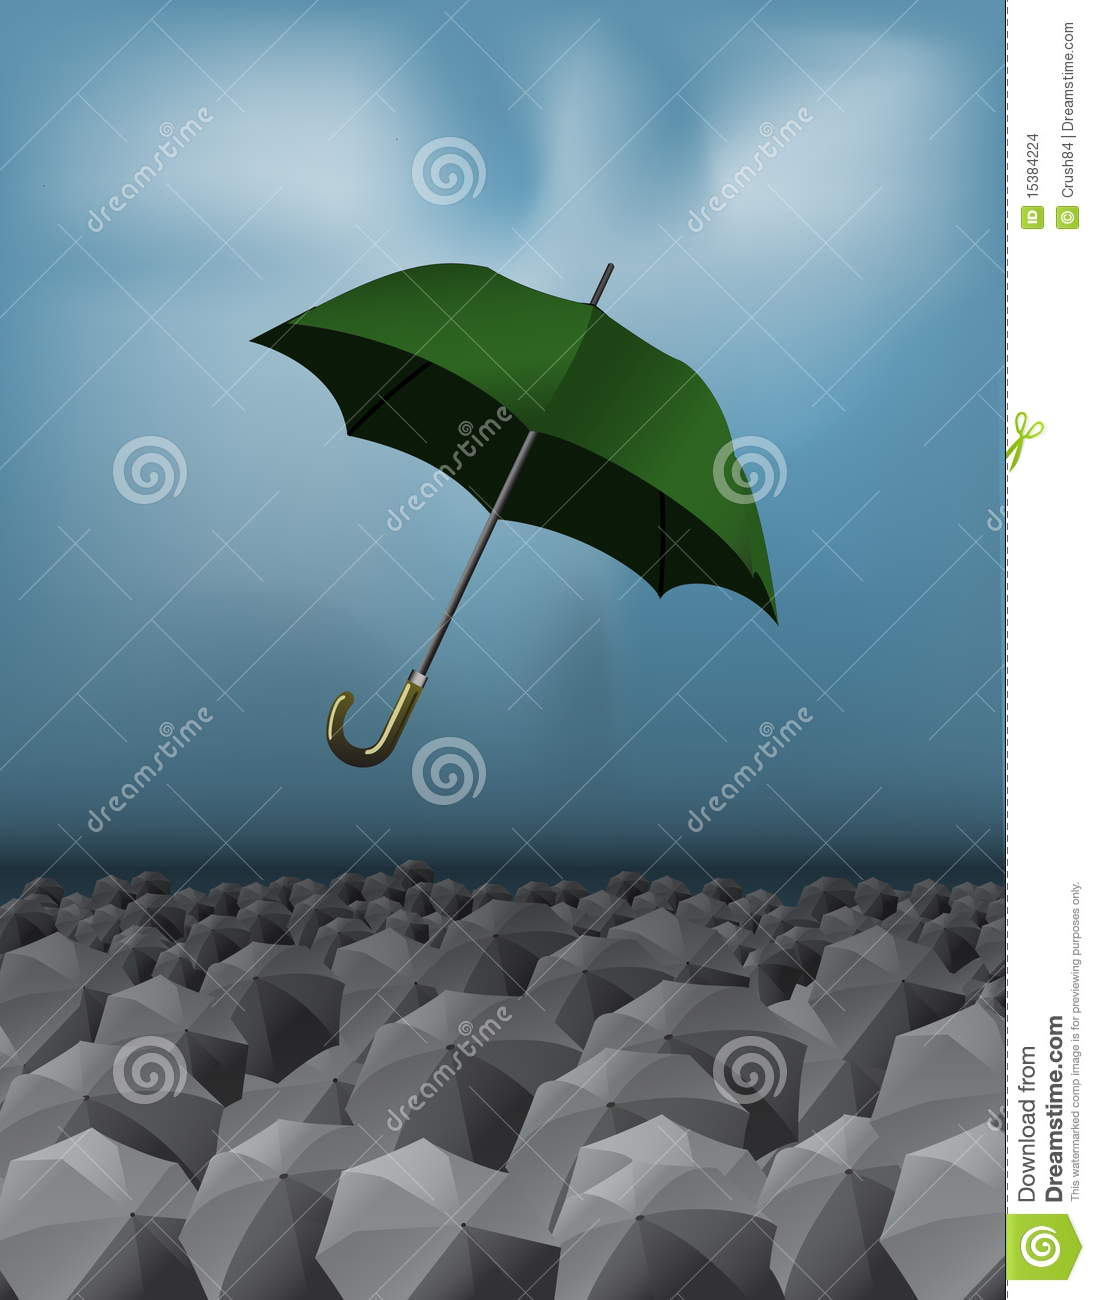 Green Umbrella over Crowd of Umbrellas